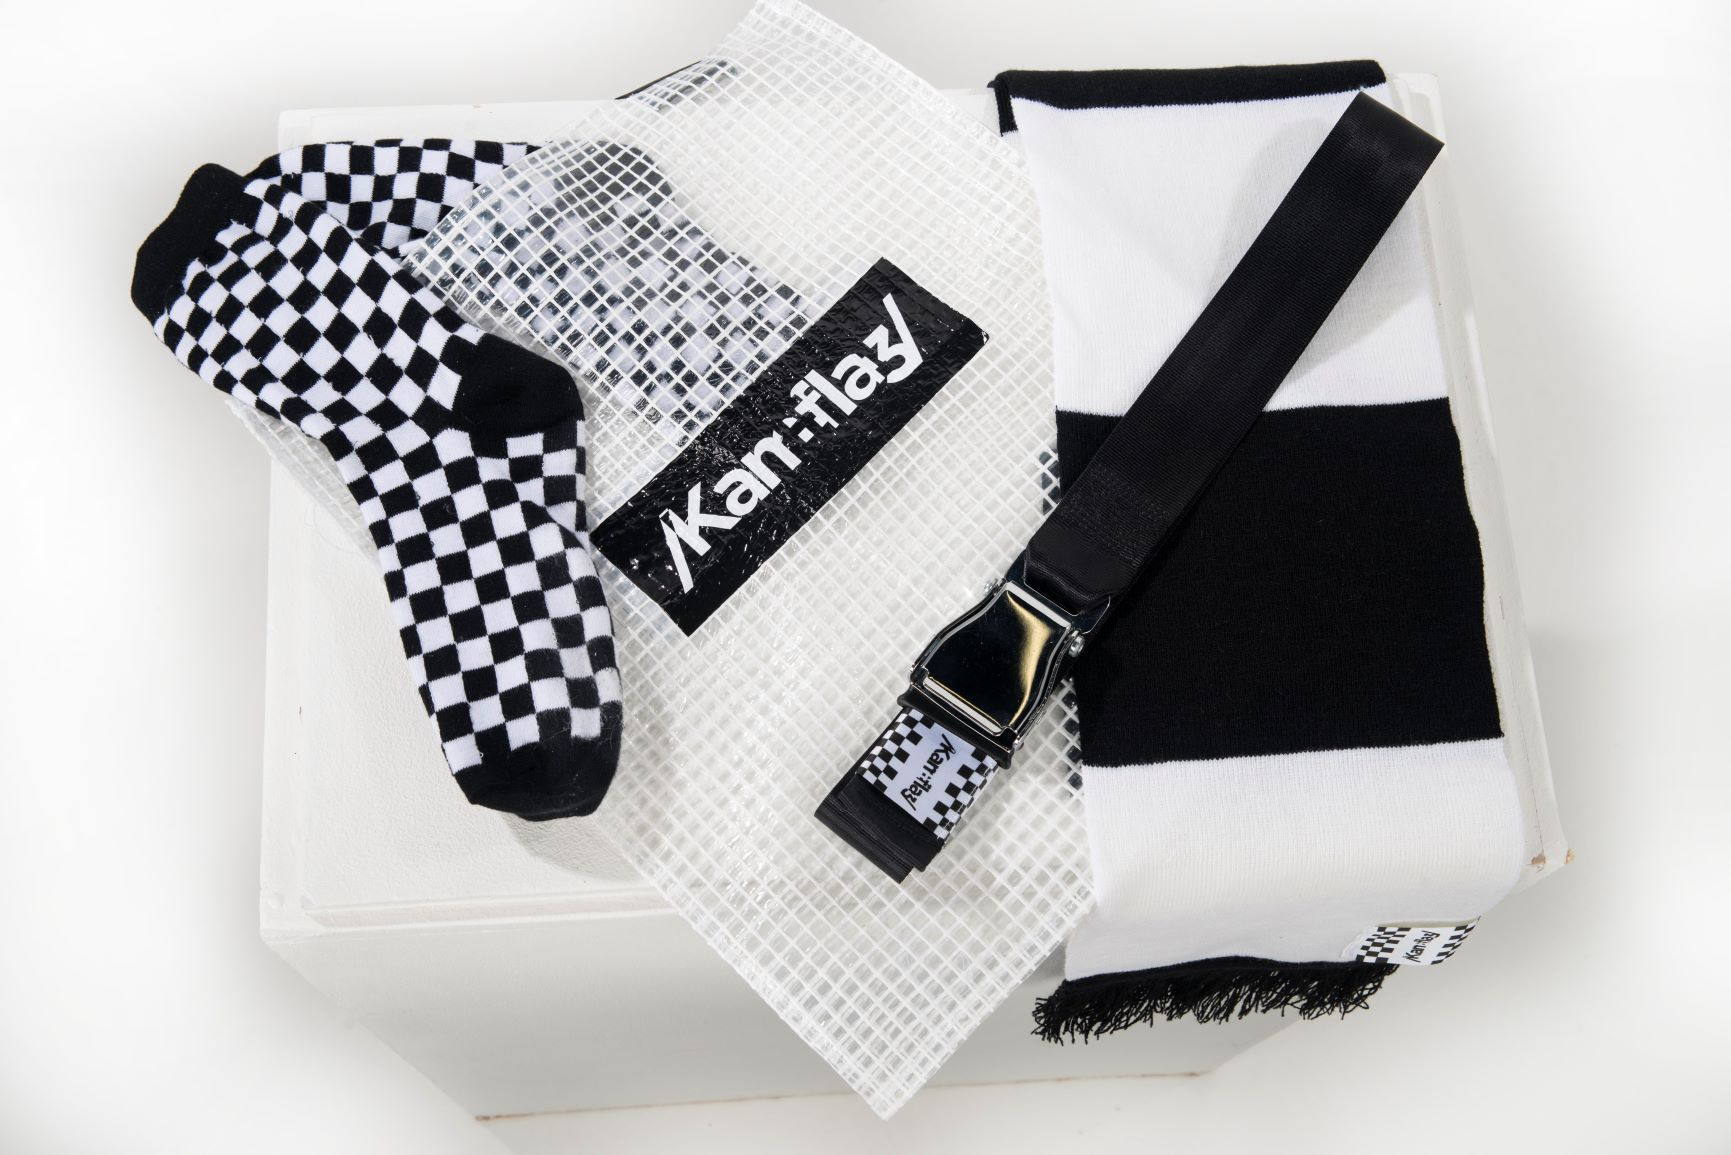 Kam0 Hooligan scarf smart loud accessory.  British made high fashion that stands out.